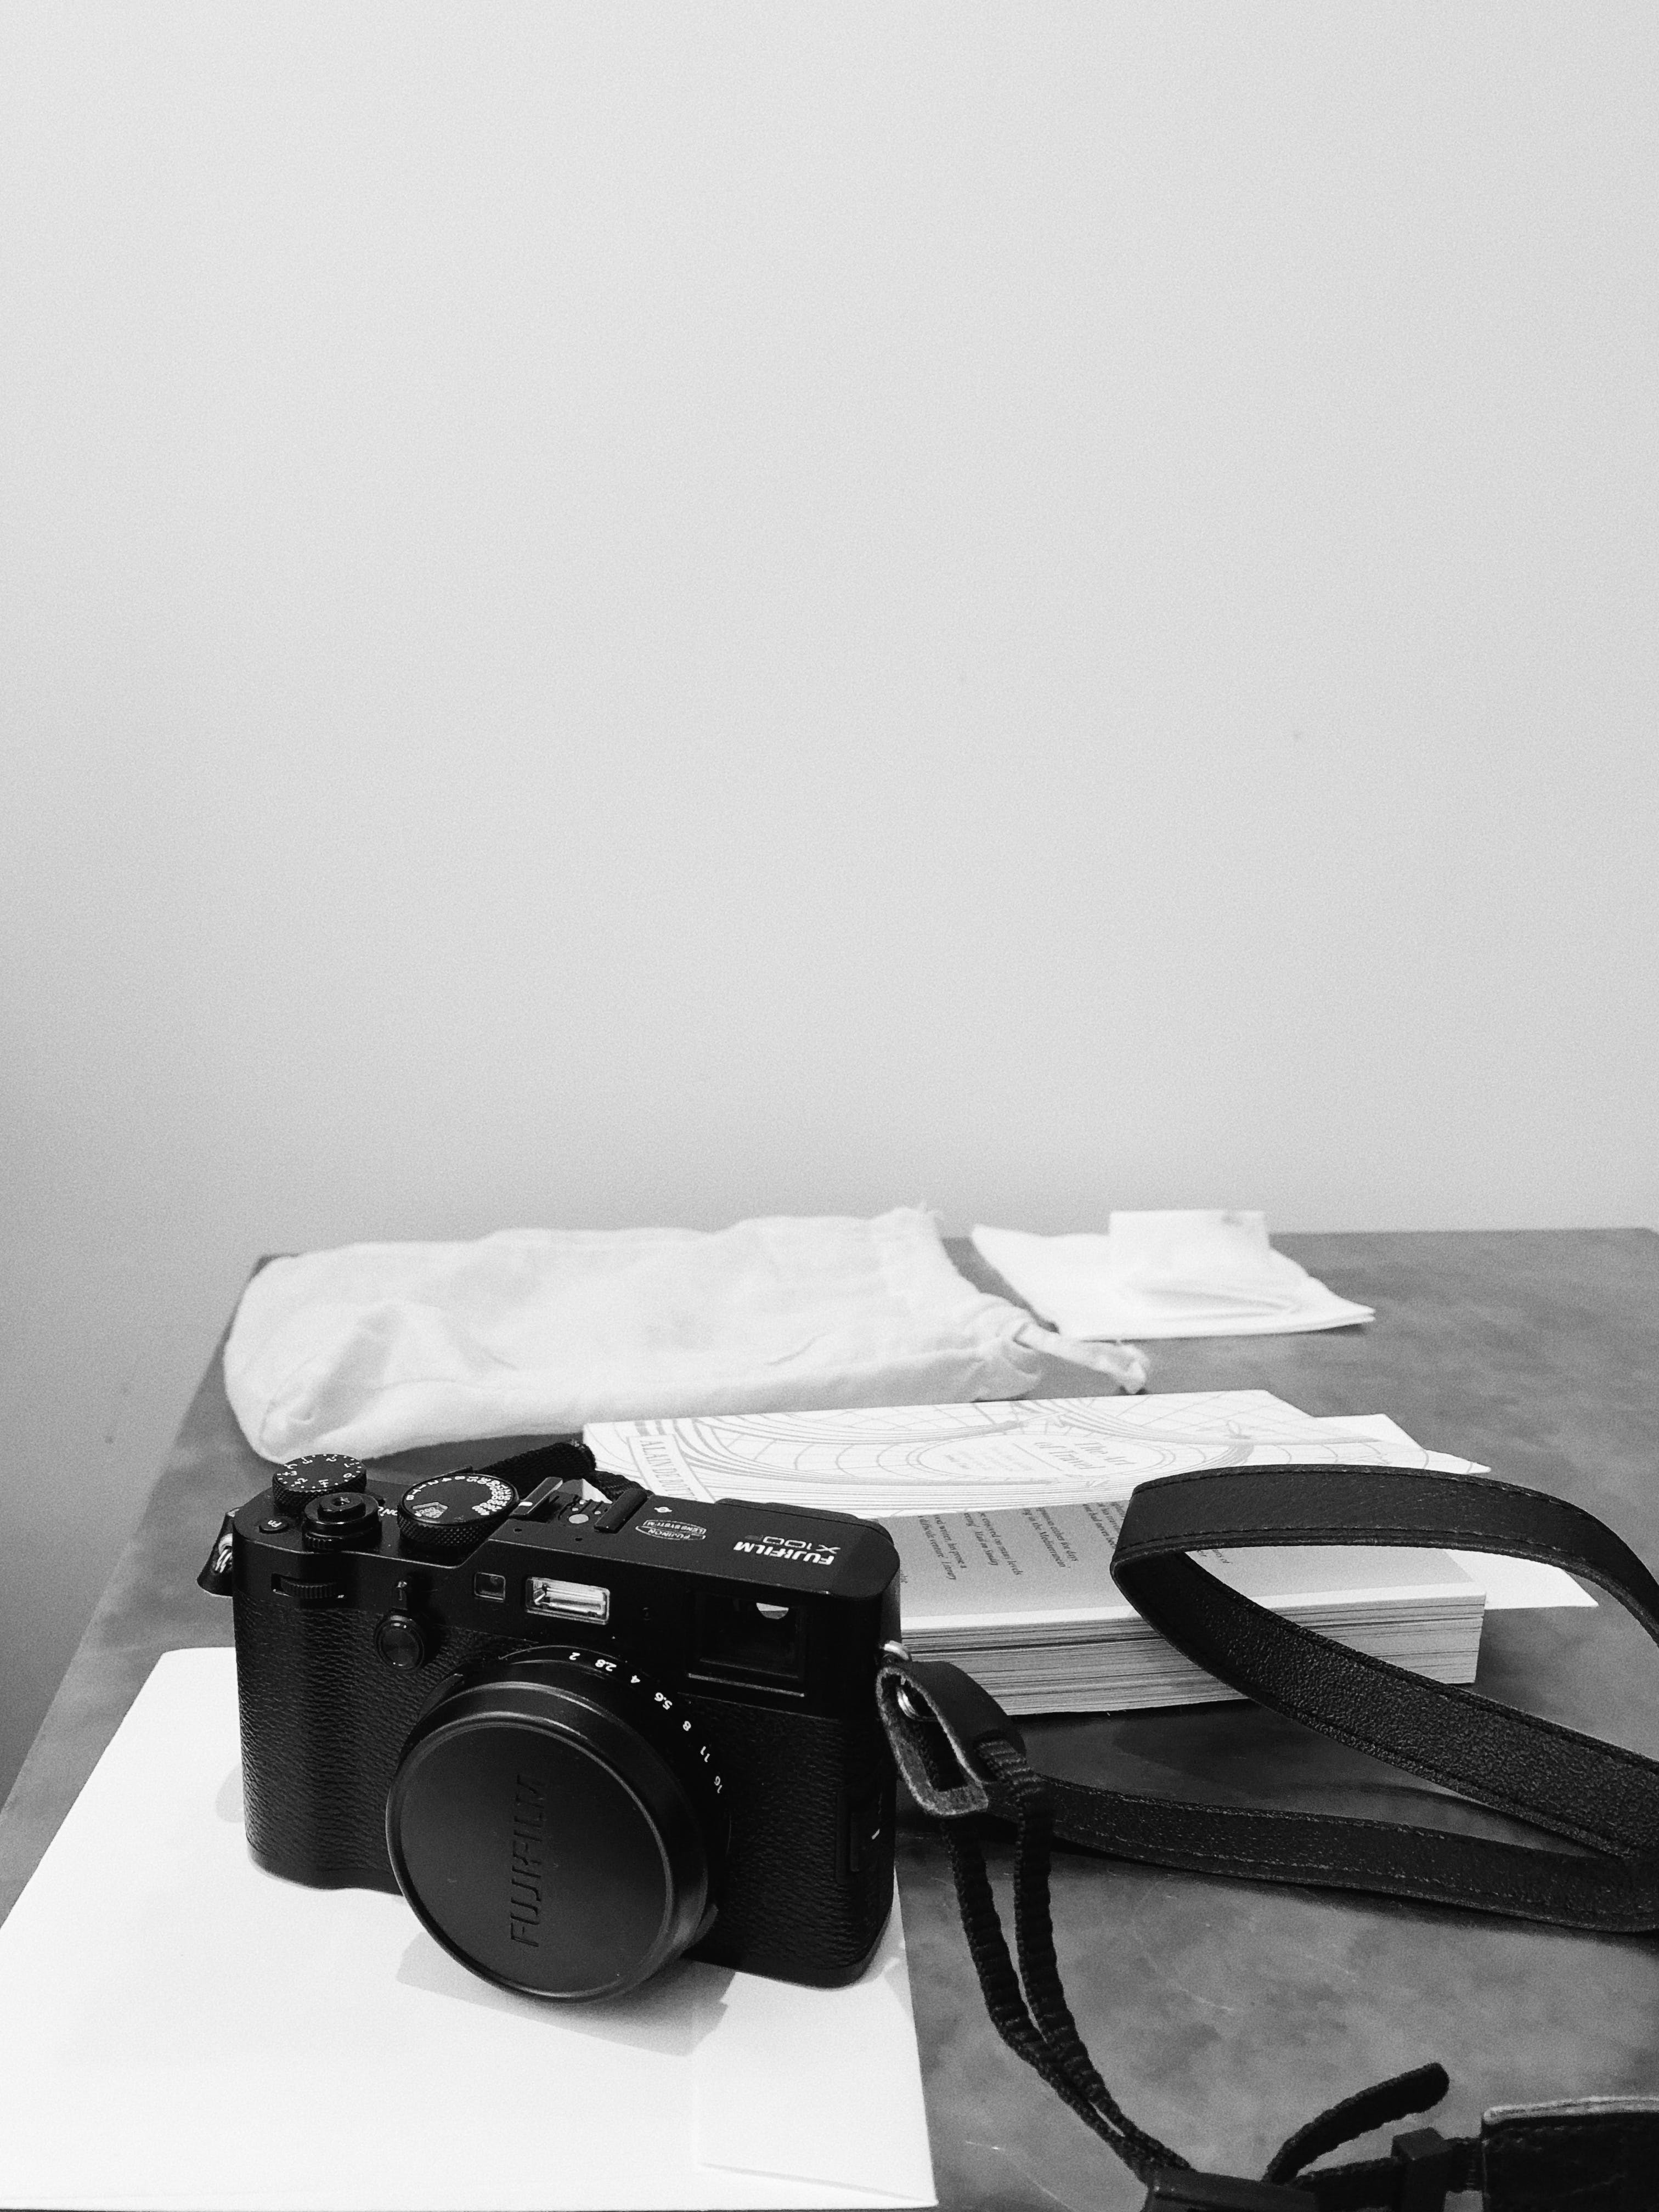 Black Slr Camera on Table